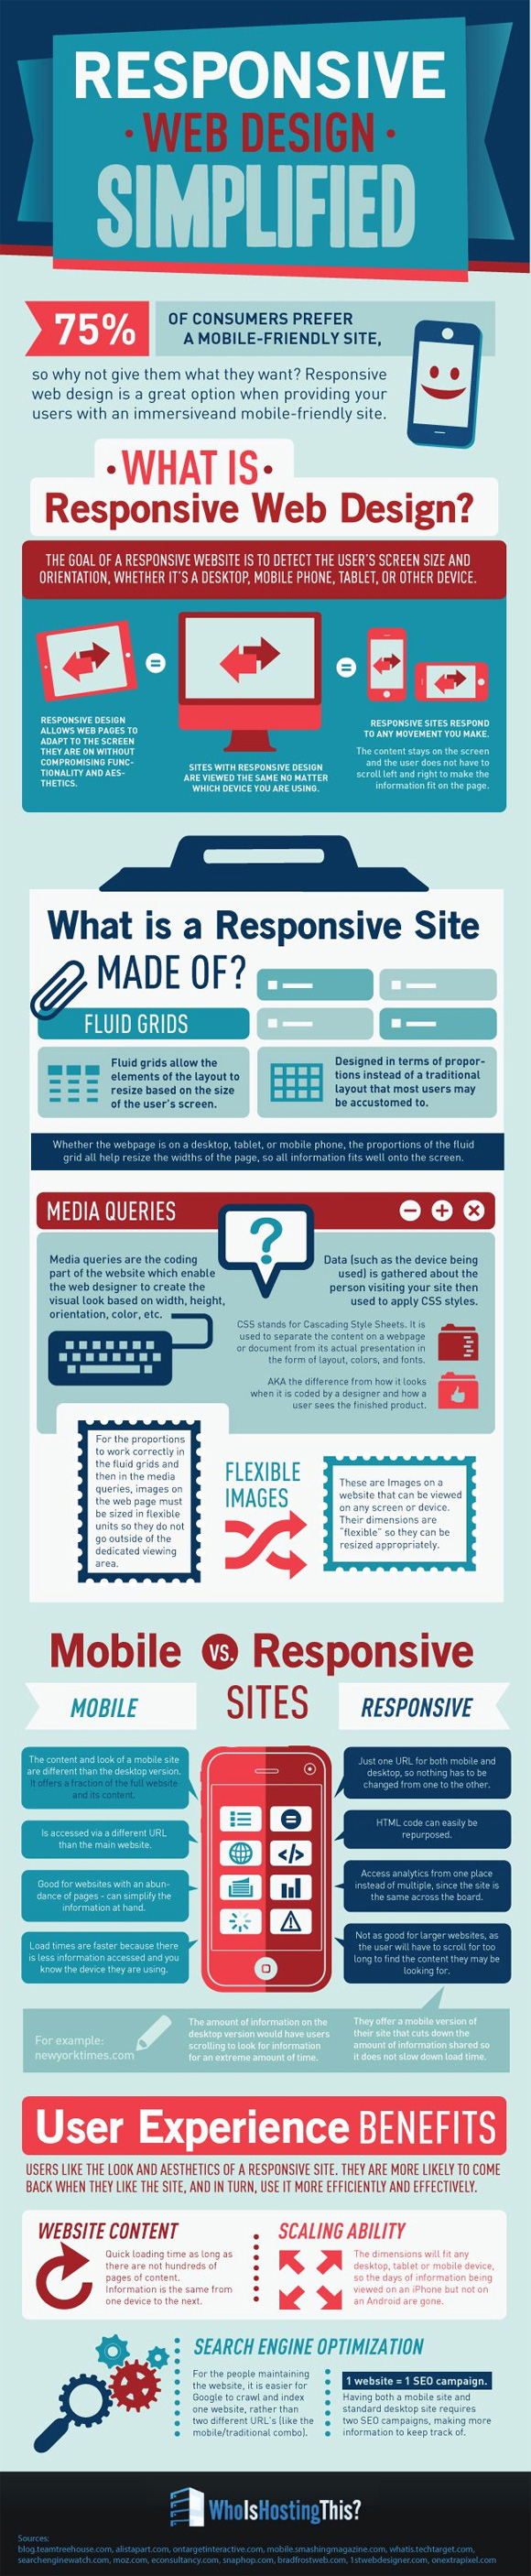 20 Useful Infographics Featuring Web Deisgn Tips & Tricks